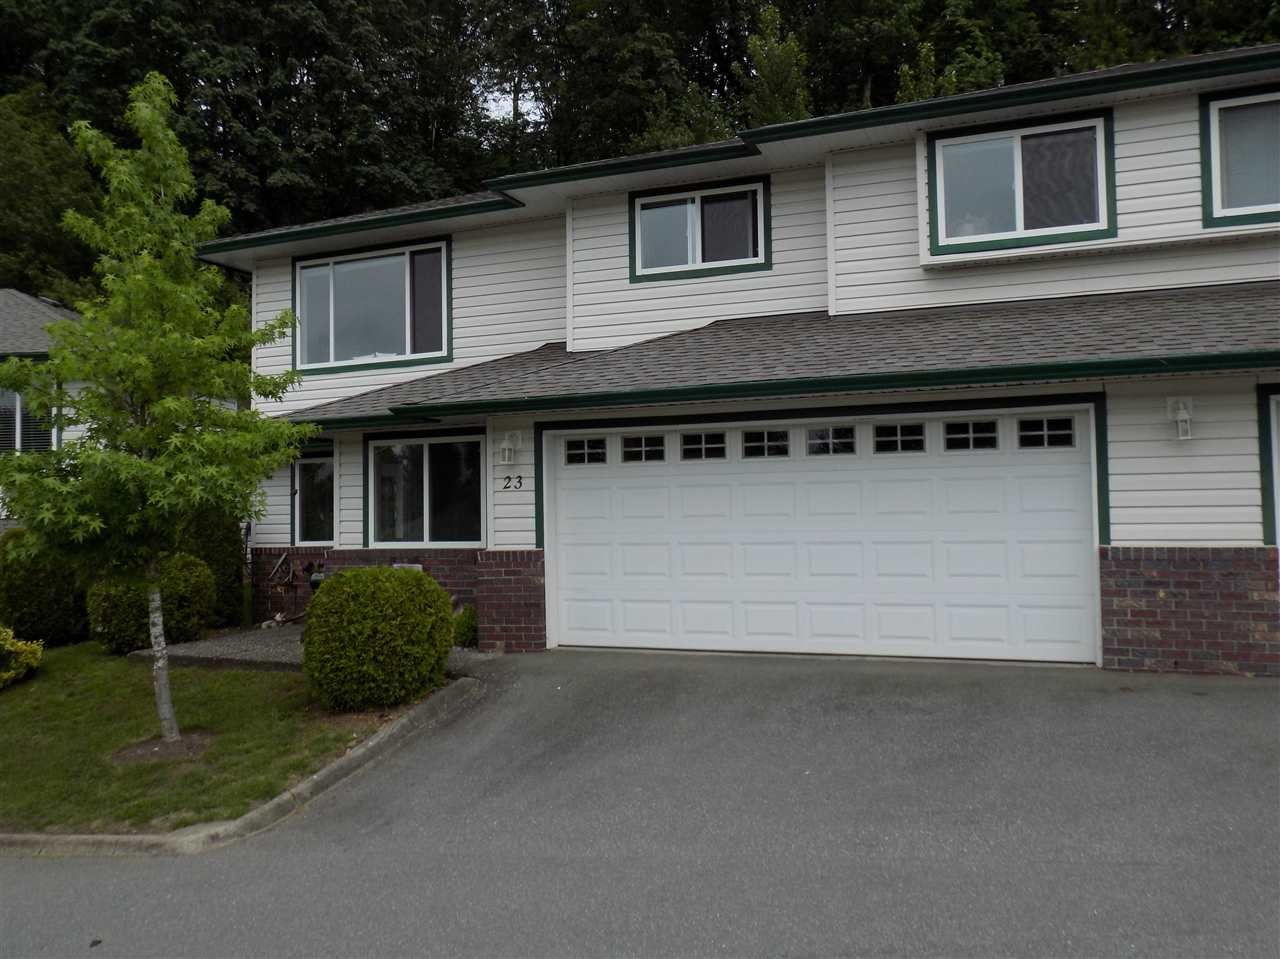 """Photo 2: Photos: 23 34250 HAZELWOOD Avenue in Abbotsford: Abbotsford East Townhouse for sale in """"Still Creek"""" : MLS®# R2374307"""